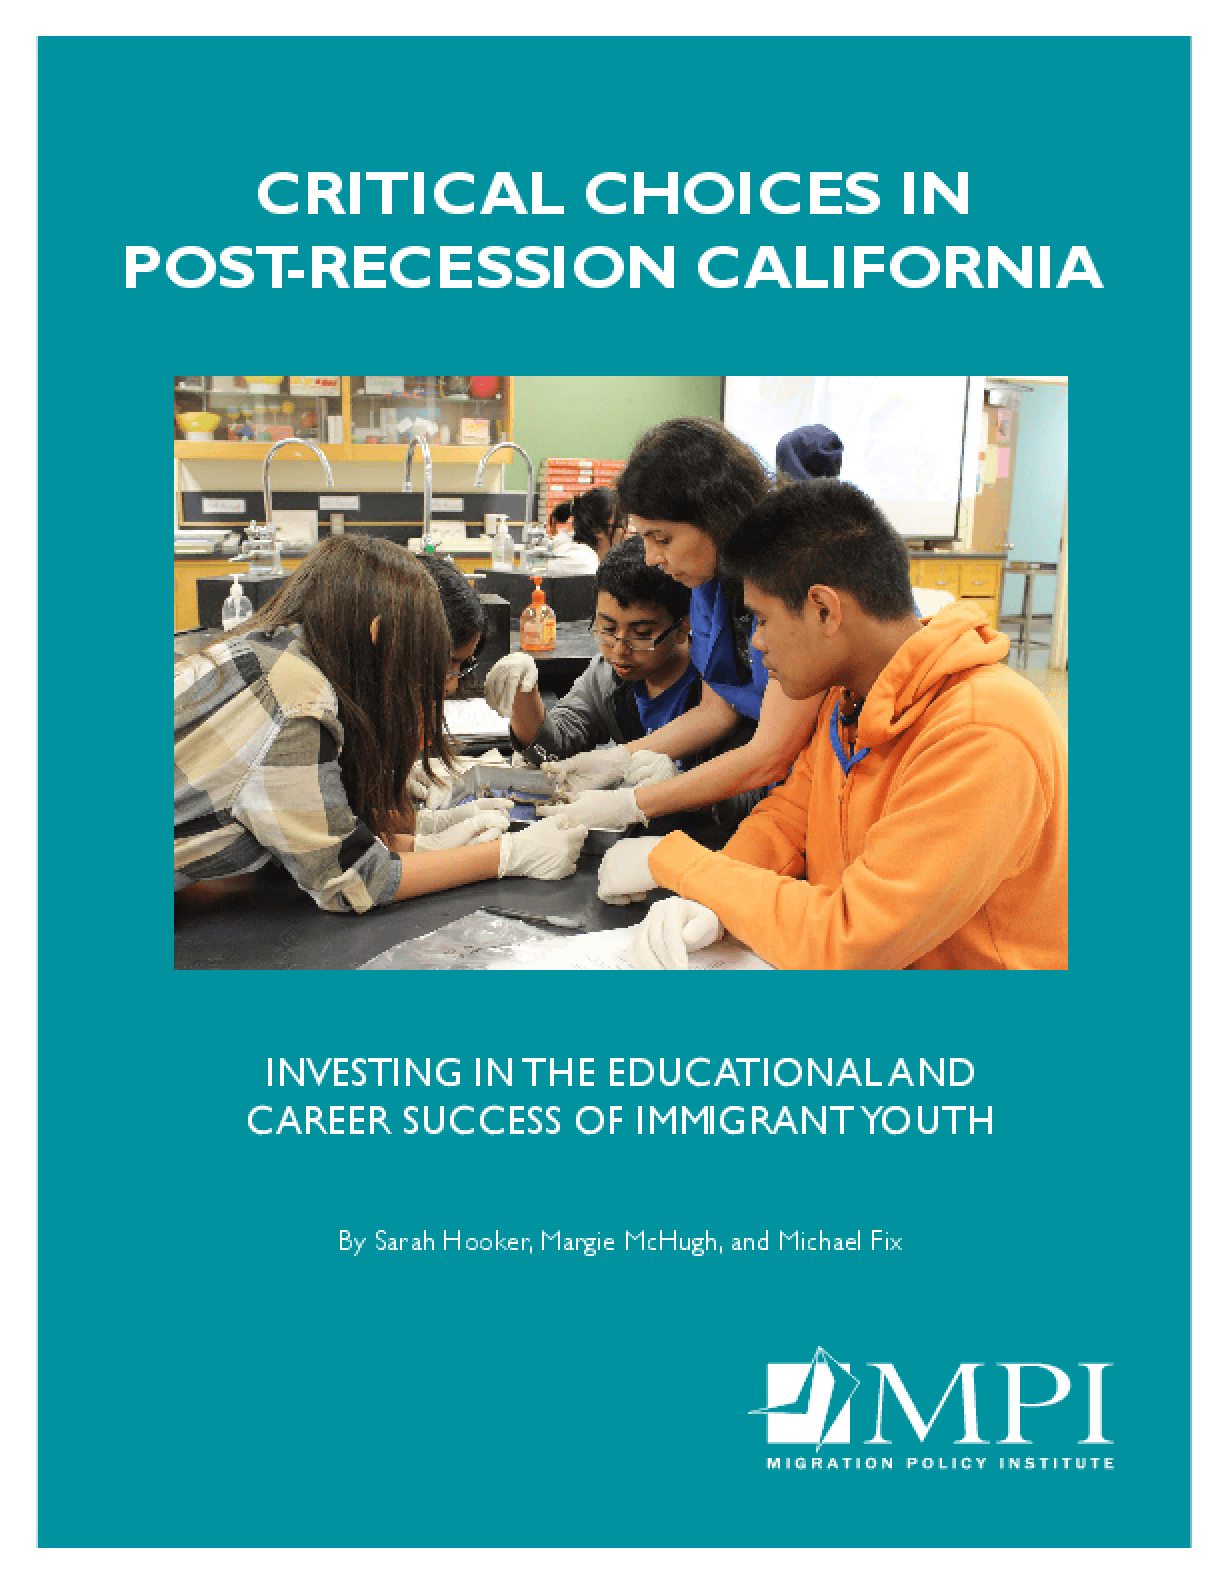 Critical Choices in Post-Recession California: Investing in the Educational and Career Success of Immigrant Youth